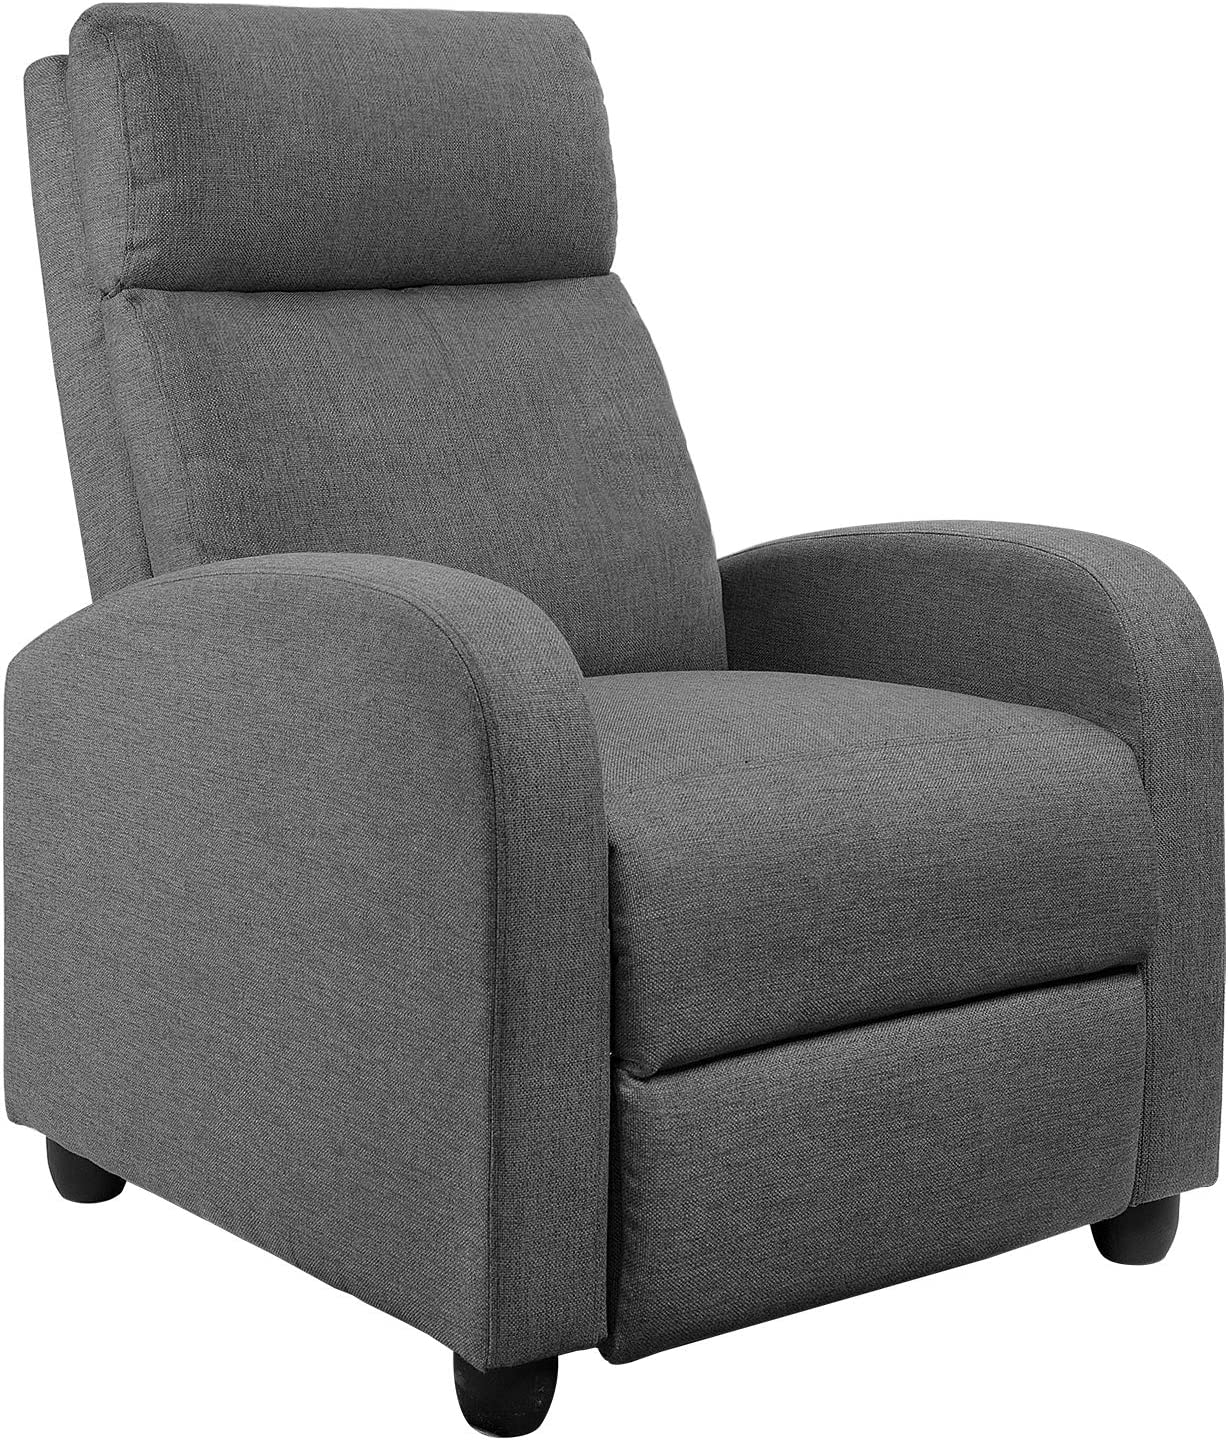 JUMMICO Fabric Recliner Chair Adjustable Home Theater Seating Single Recliner Sofa